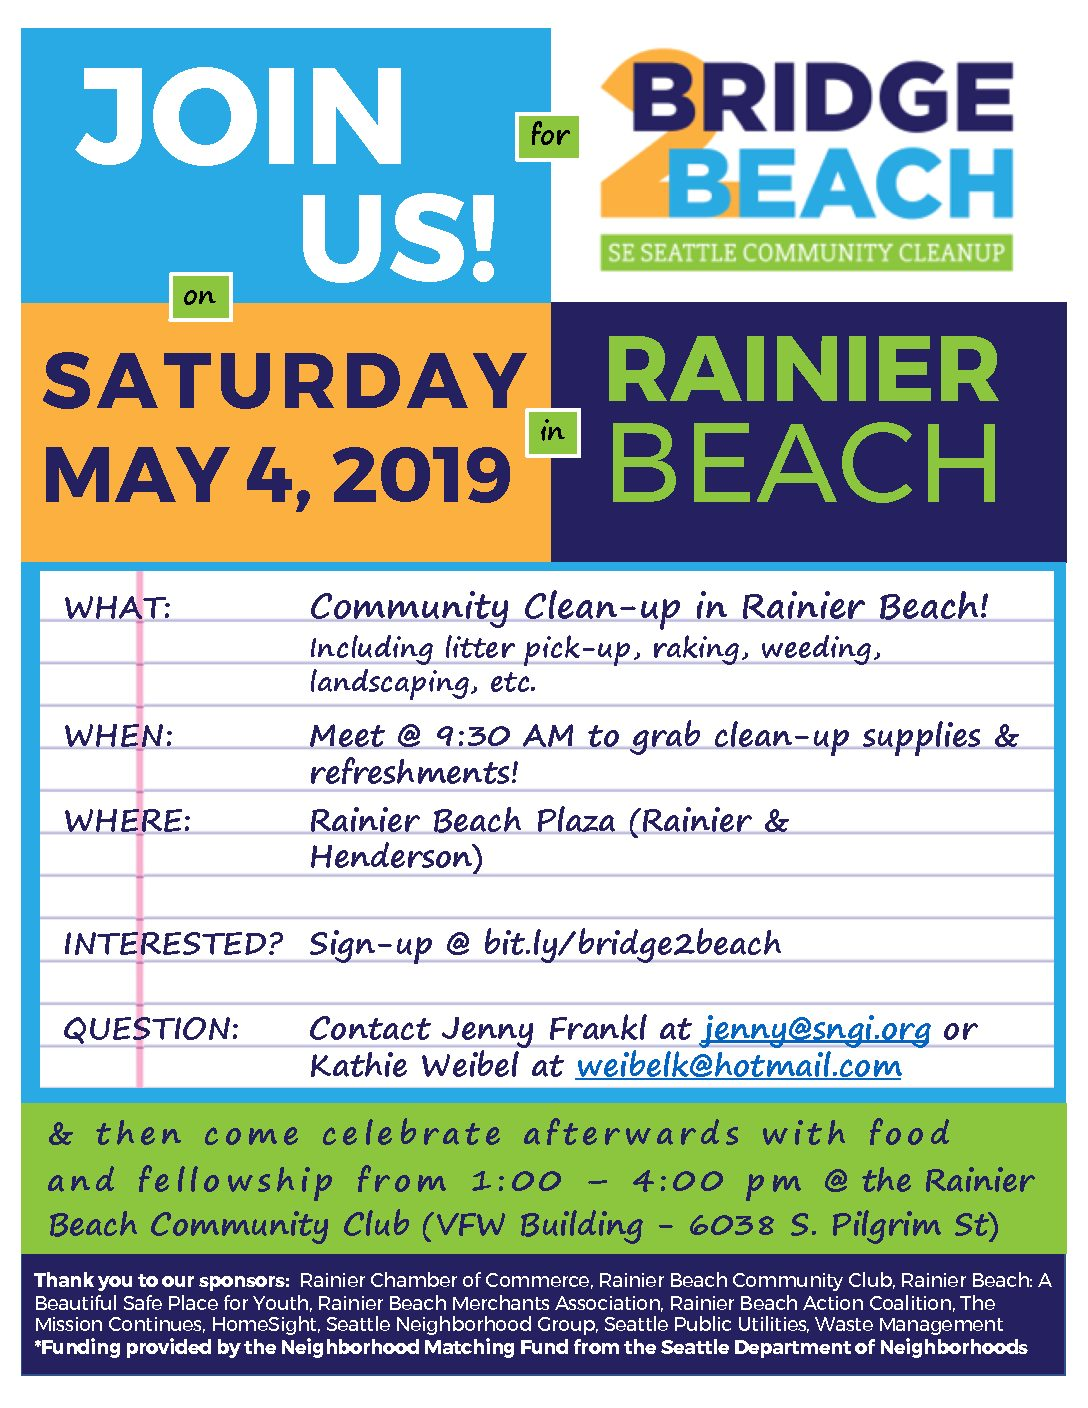 Join Us and SIGN UP  for  the Rainier Beach Bridge 2 Beach Clean Up May 4th!